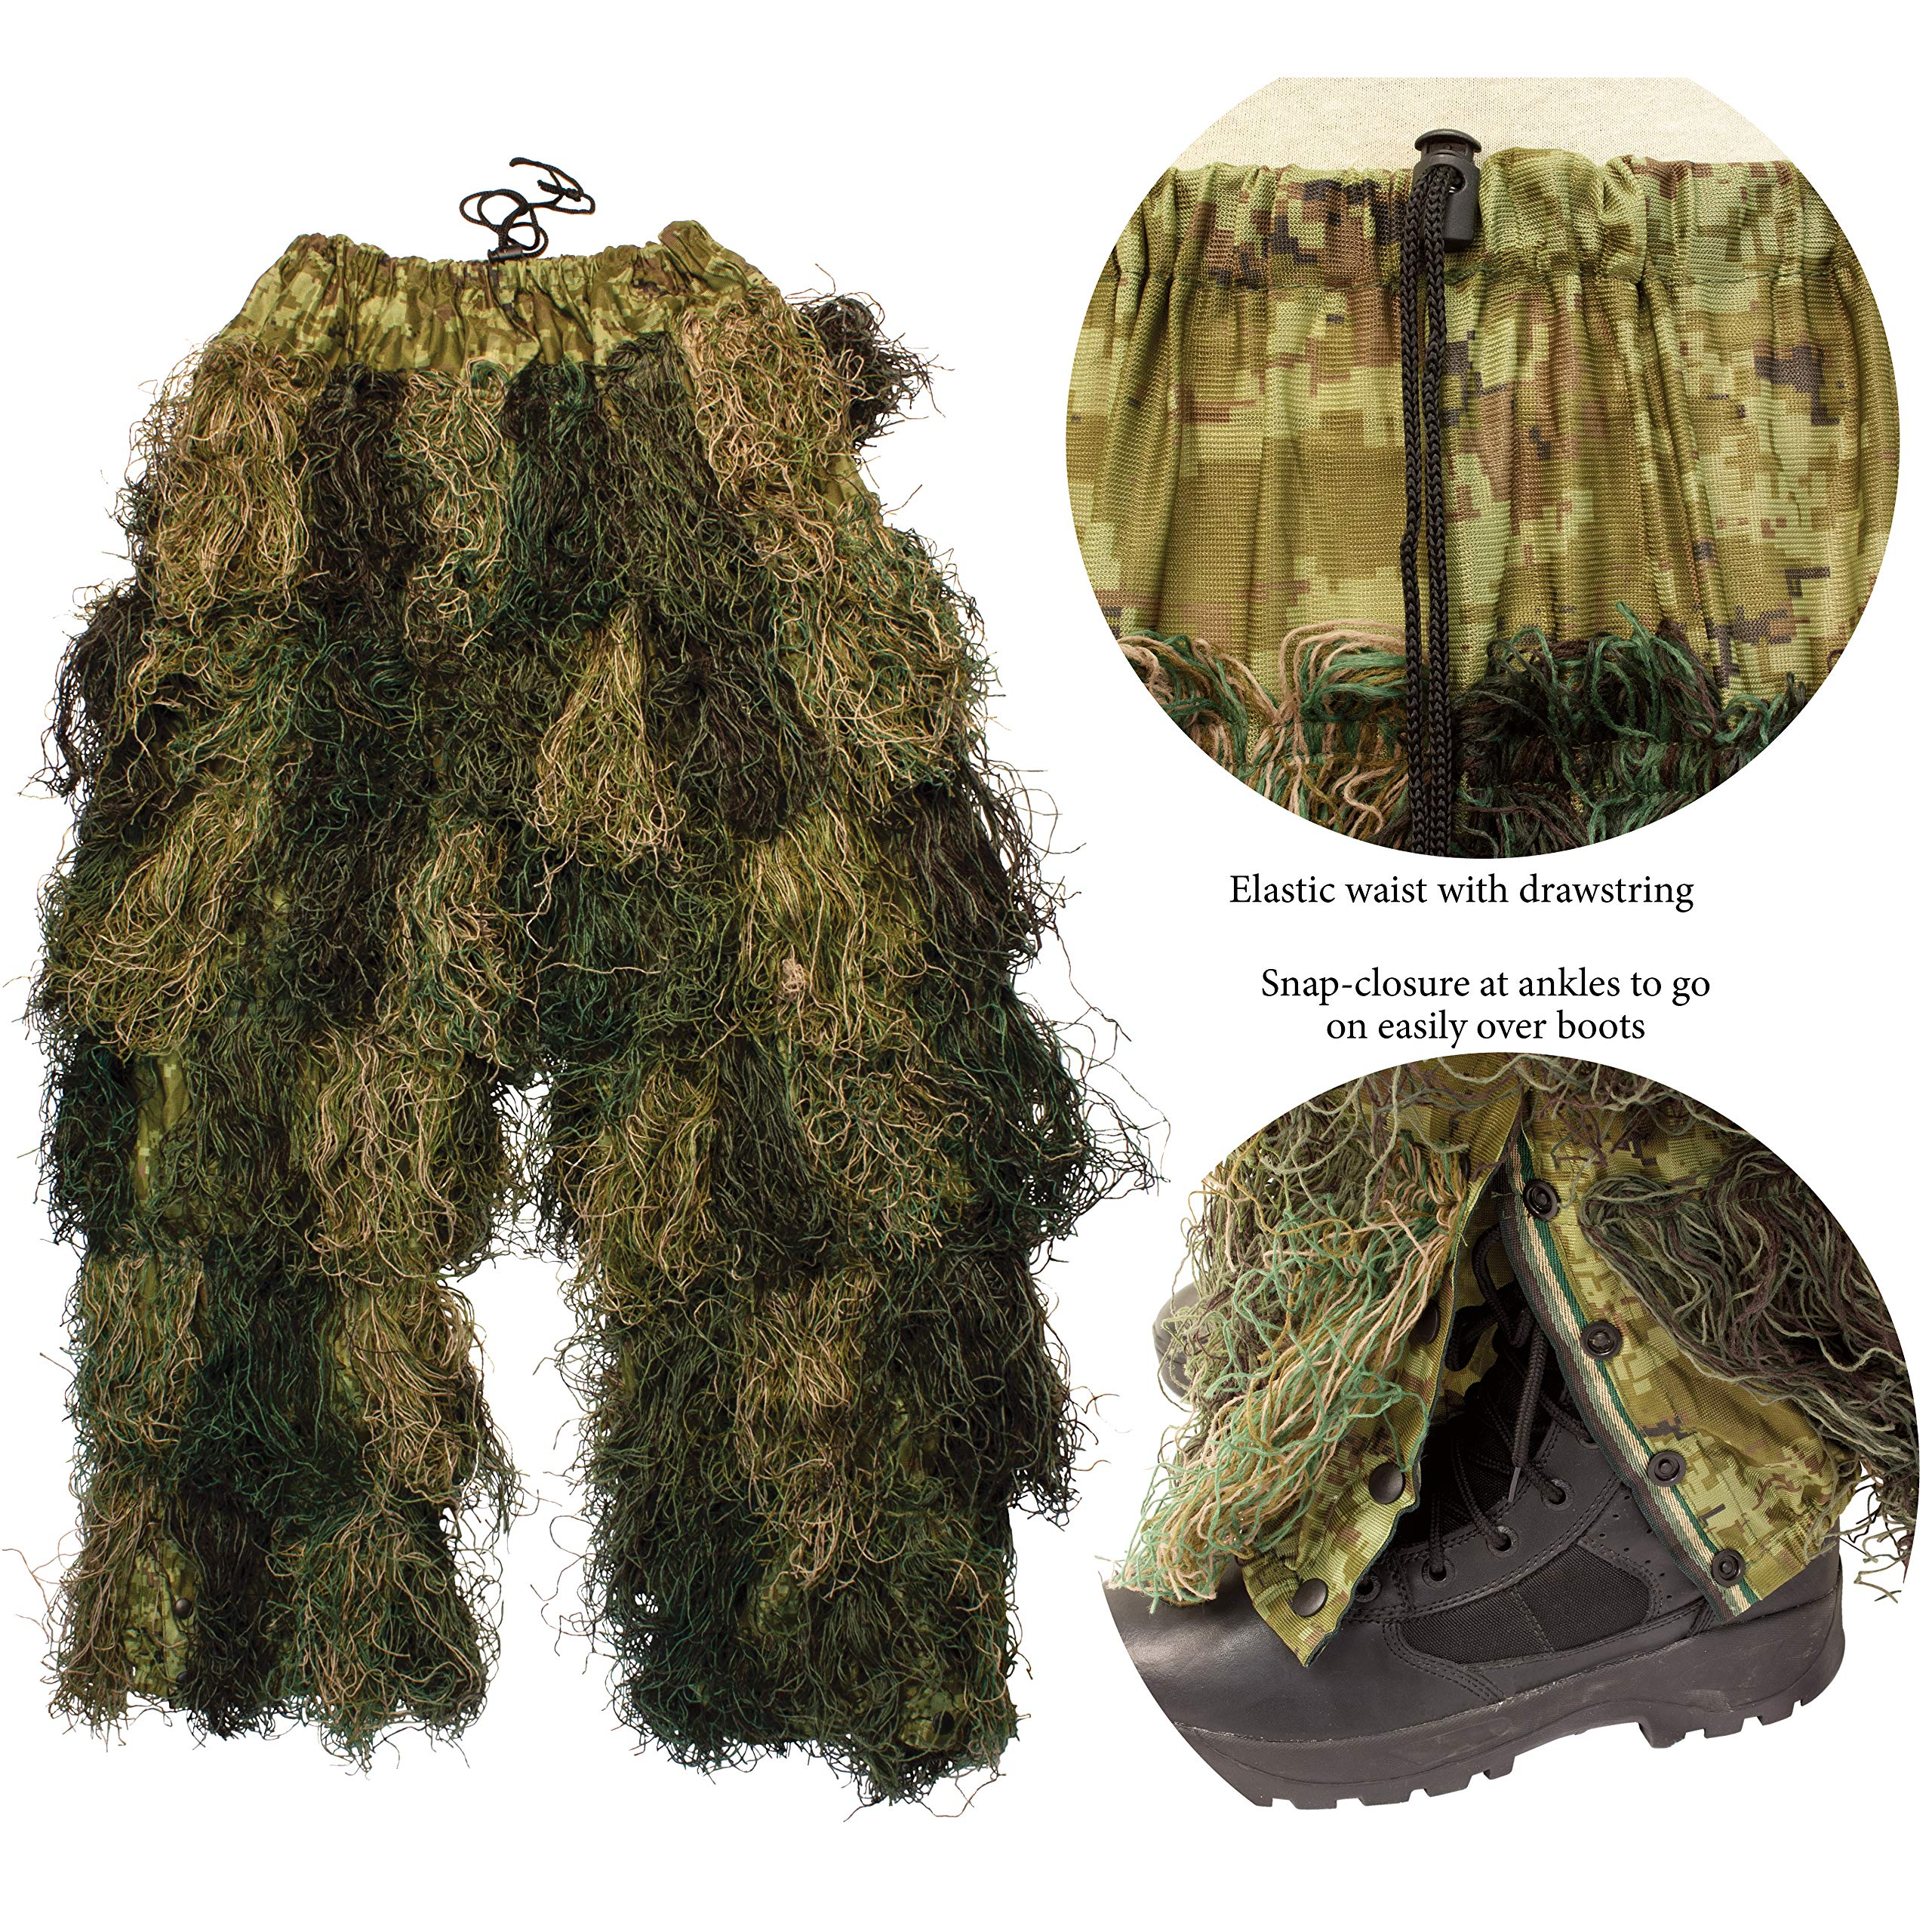 Red Rock Outdoor Gear - Ghillie Suit by Red Rock Outdoor Gear (Image #5)